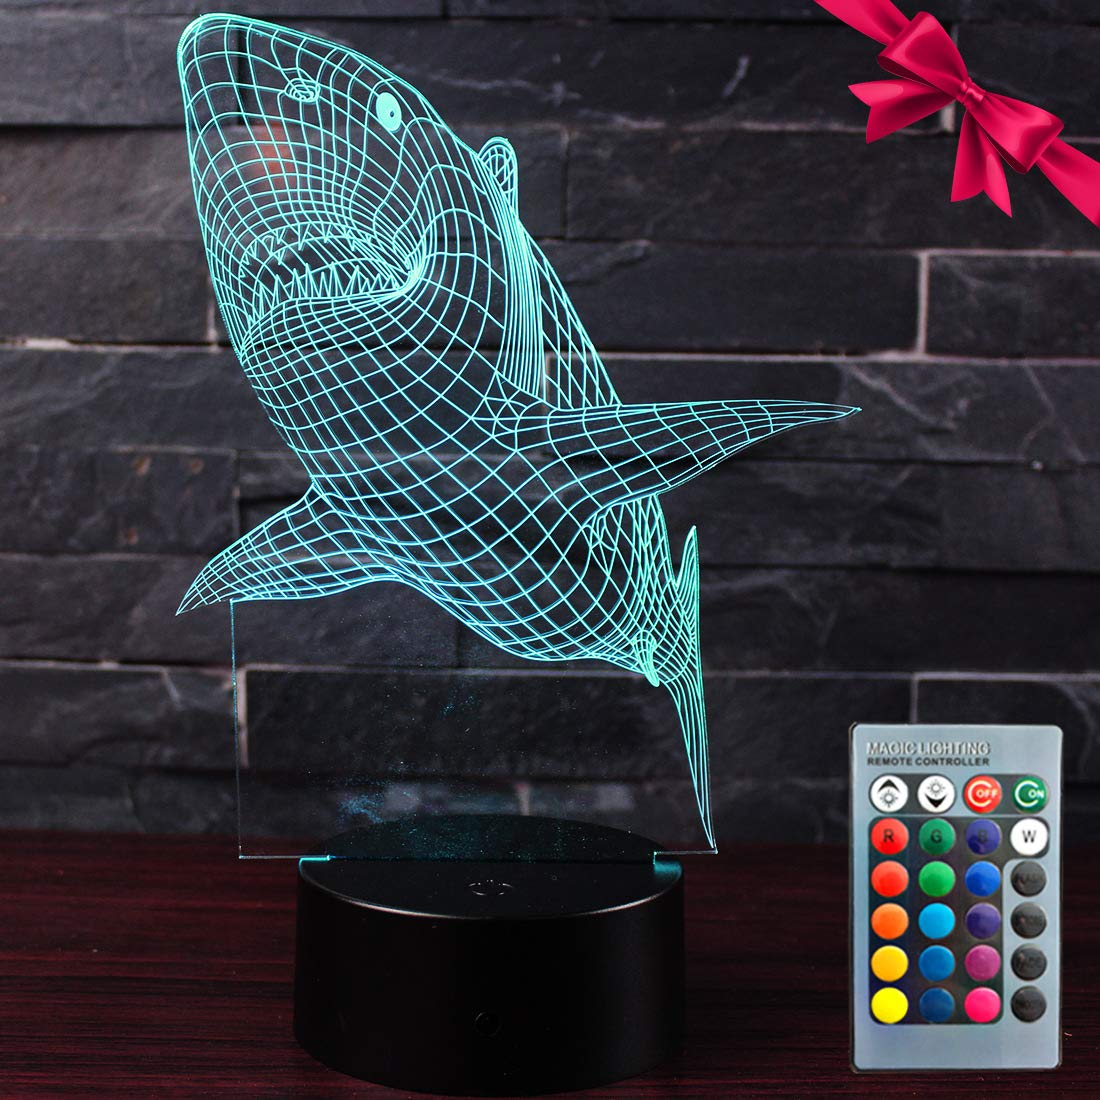 Shark 3D Led Night Light - Optical Illusion 7 Colors Touch Table Desk Visual Lamp with Remote Control Lamp for Gifts Toys for Children Kids